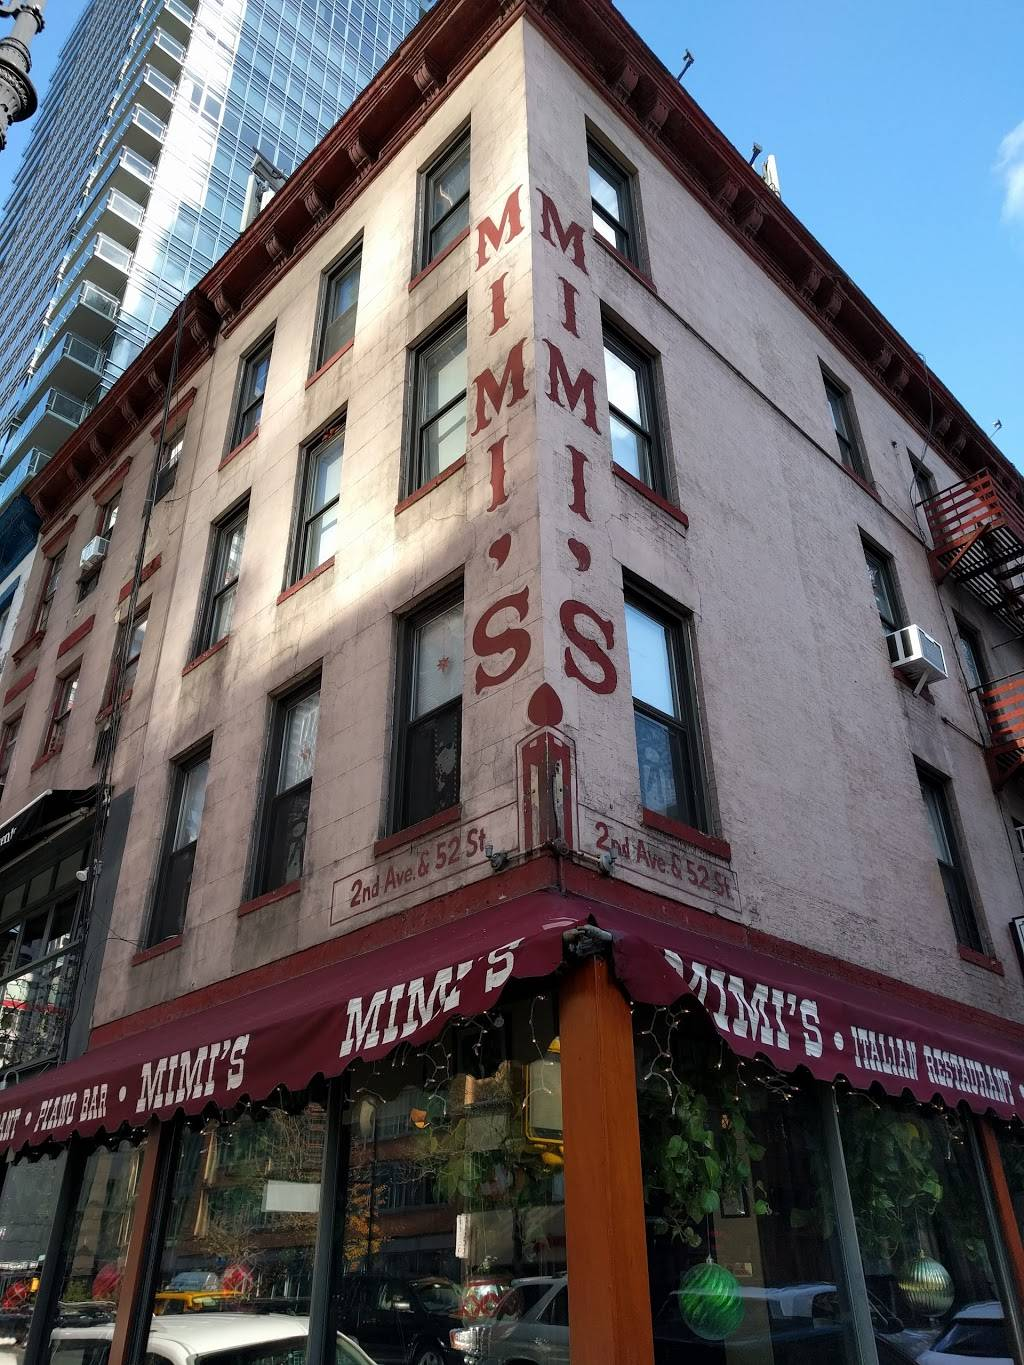 Mimis | restaurant | 984 2nd Ave, New York, NY 10022, USA | 2126884692 OR +1 212-688-4692